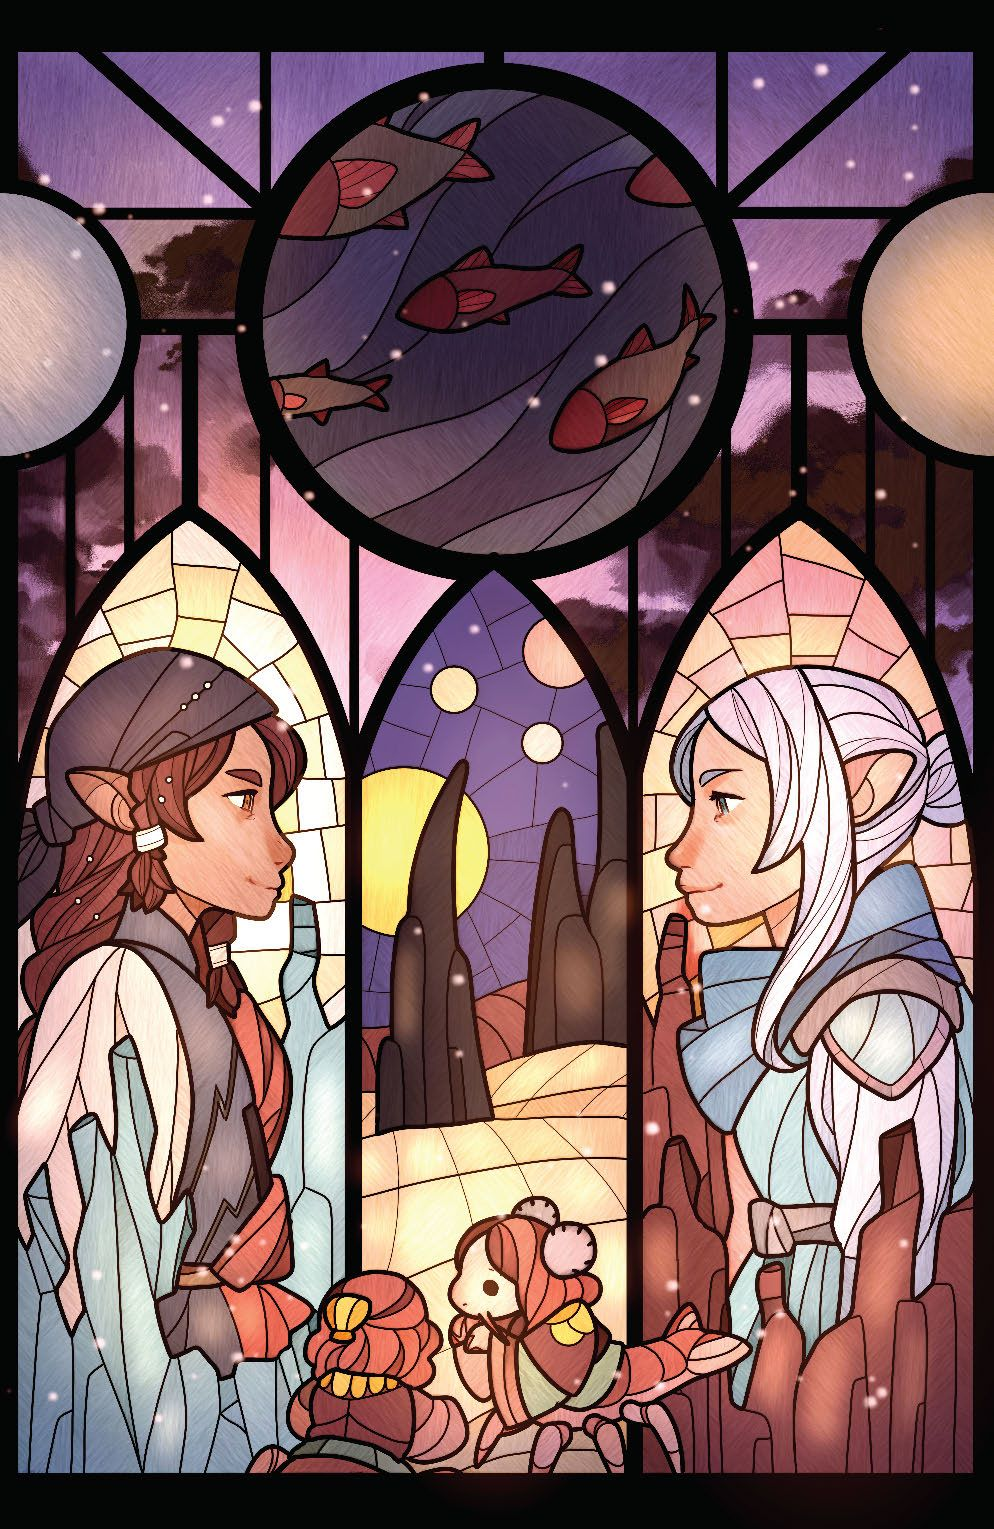 DarkCrystal_AgeResistance_011_Cover_ConnectingVariant ComicList Previews: JIM HENSON'S THE DARK CRYSTAL AGE OF RESISTANCE #11